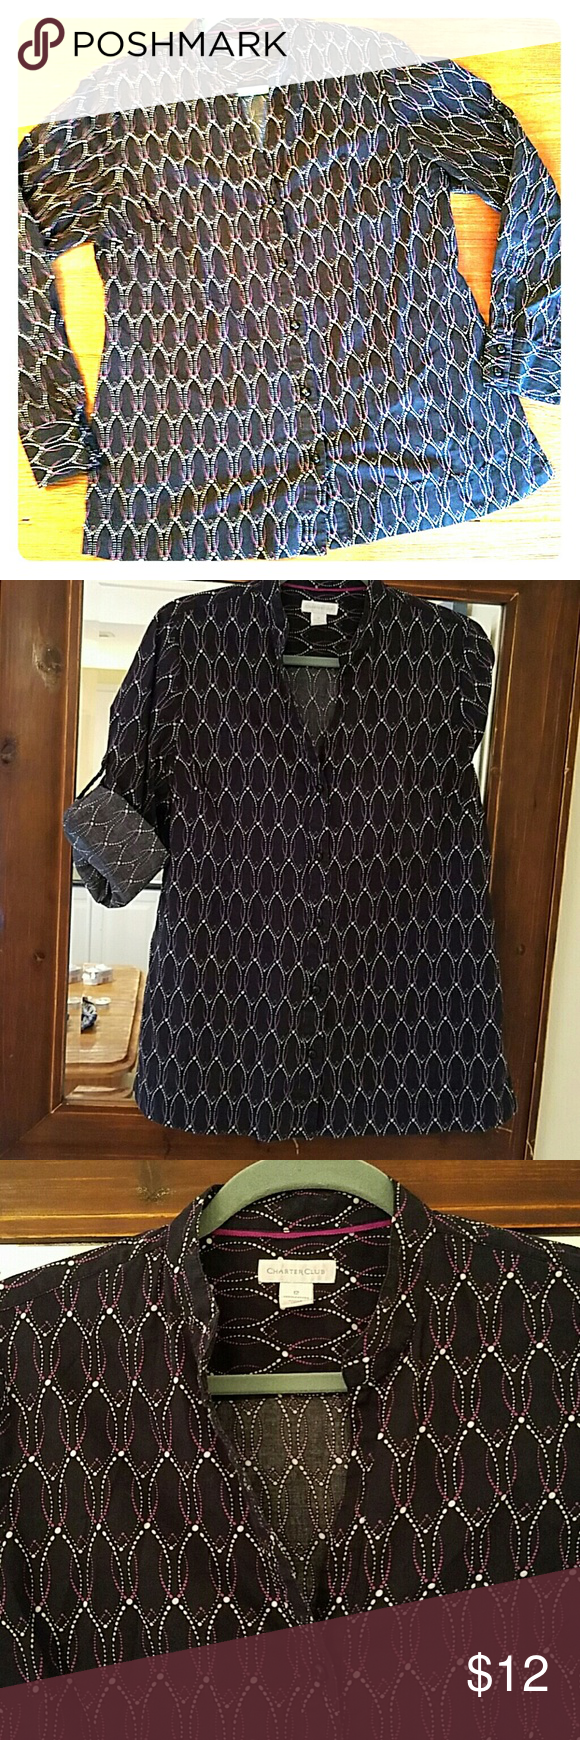 Charter Club Button Front Blouse 100% cotton, button front blouse. Long sleeves with option to roll and button to make mid sleeve. Navy with white and purple print. Very versatile, work wear or casual. Charter Club Tops Button Down Shirts